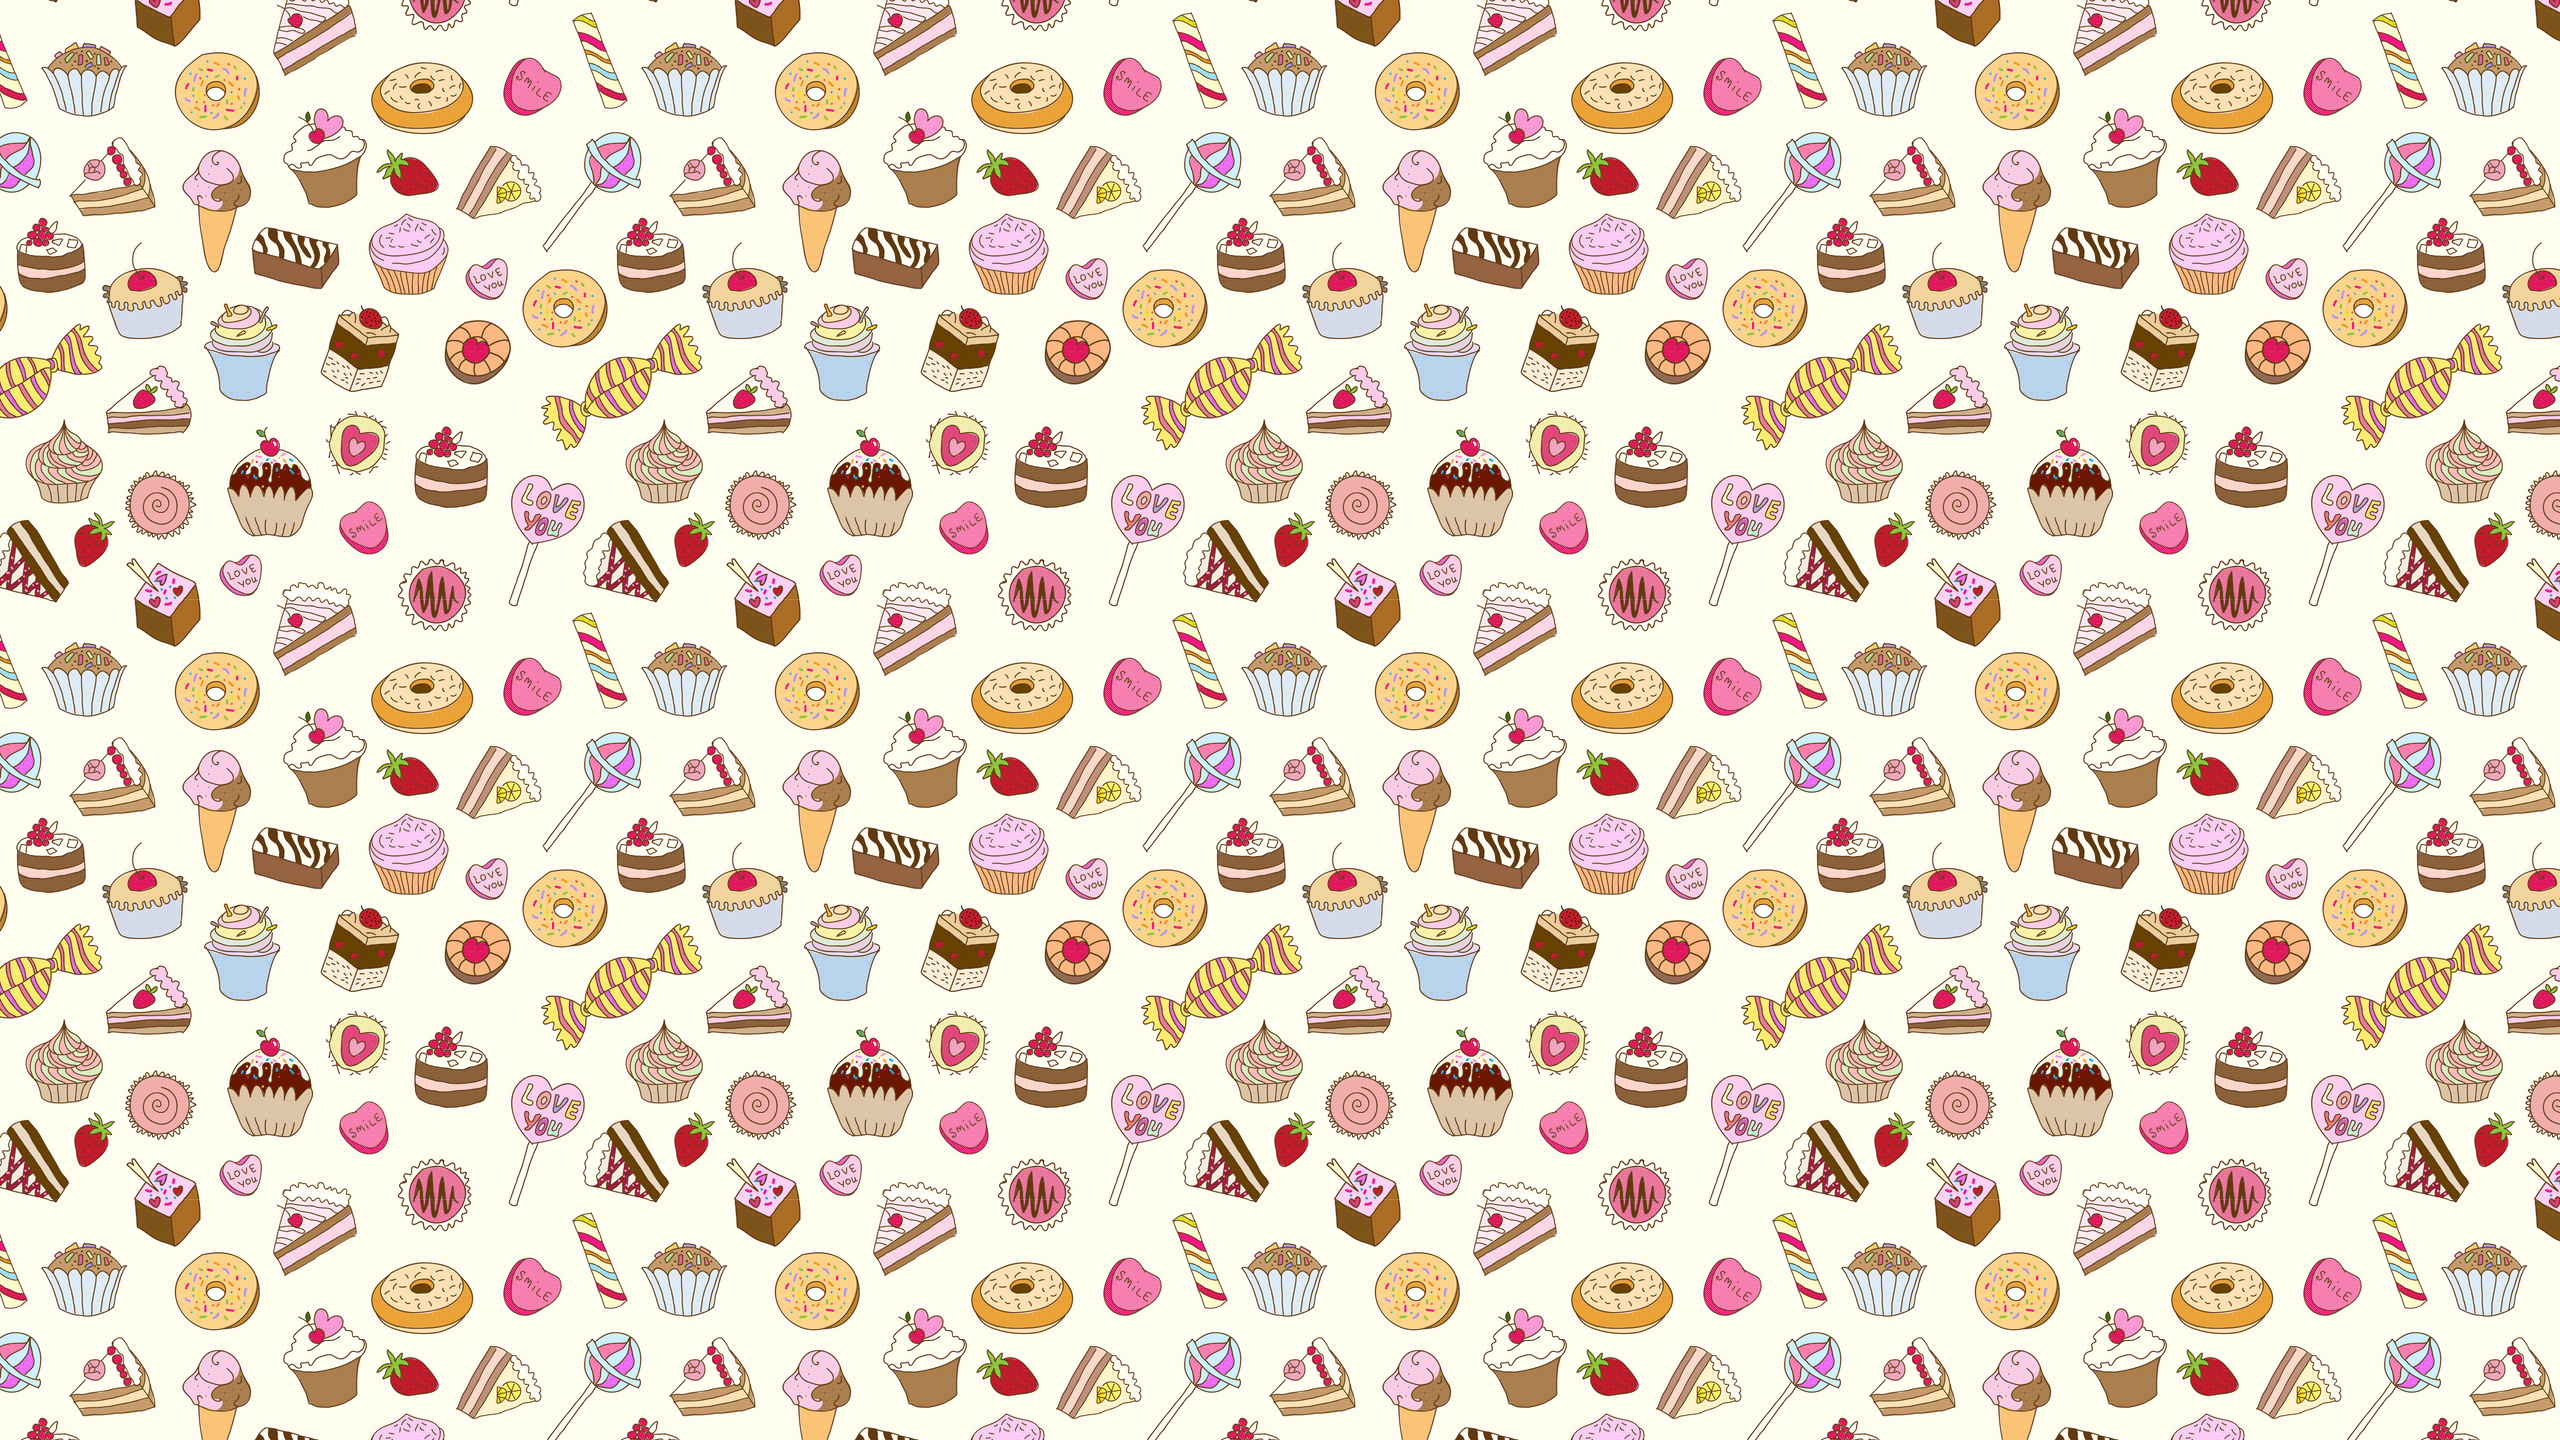 Candy Wallpapers For Desktop 26 Desktop Background